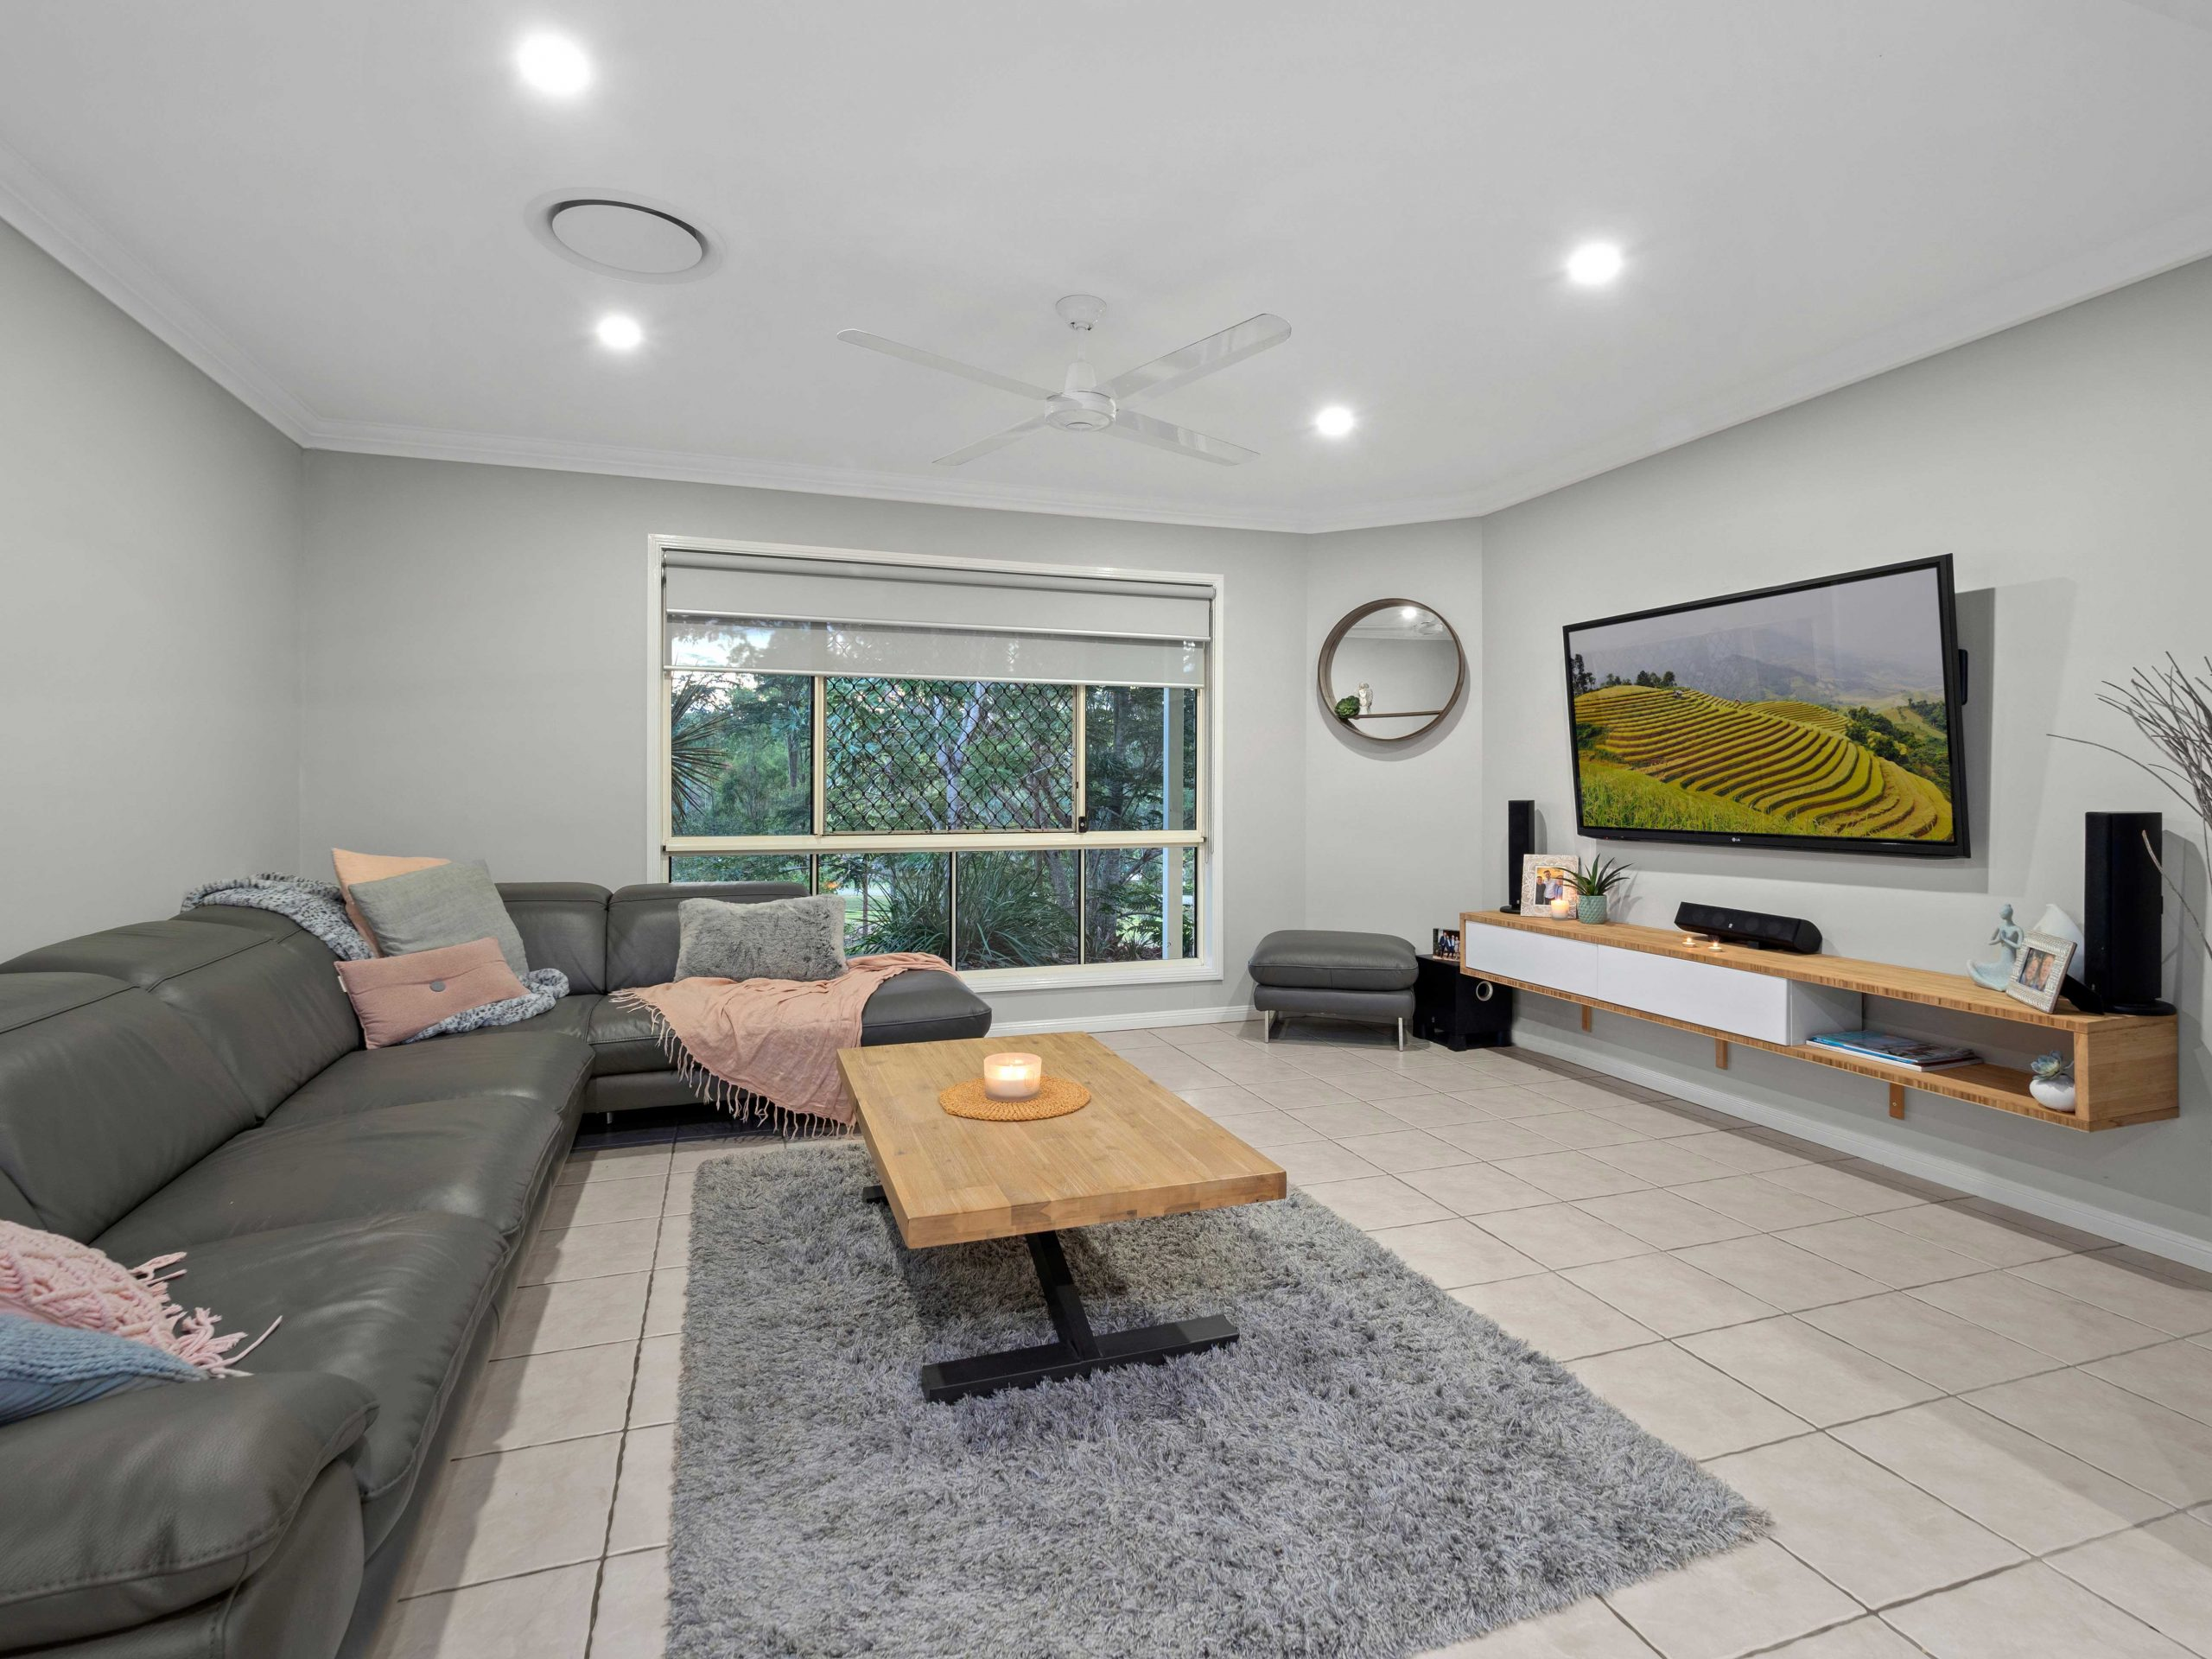 Capturing the lounge area of an acreage property for sale at Jimboomba